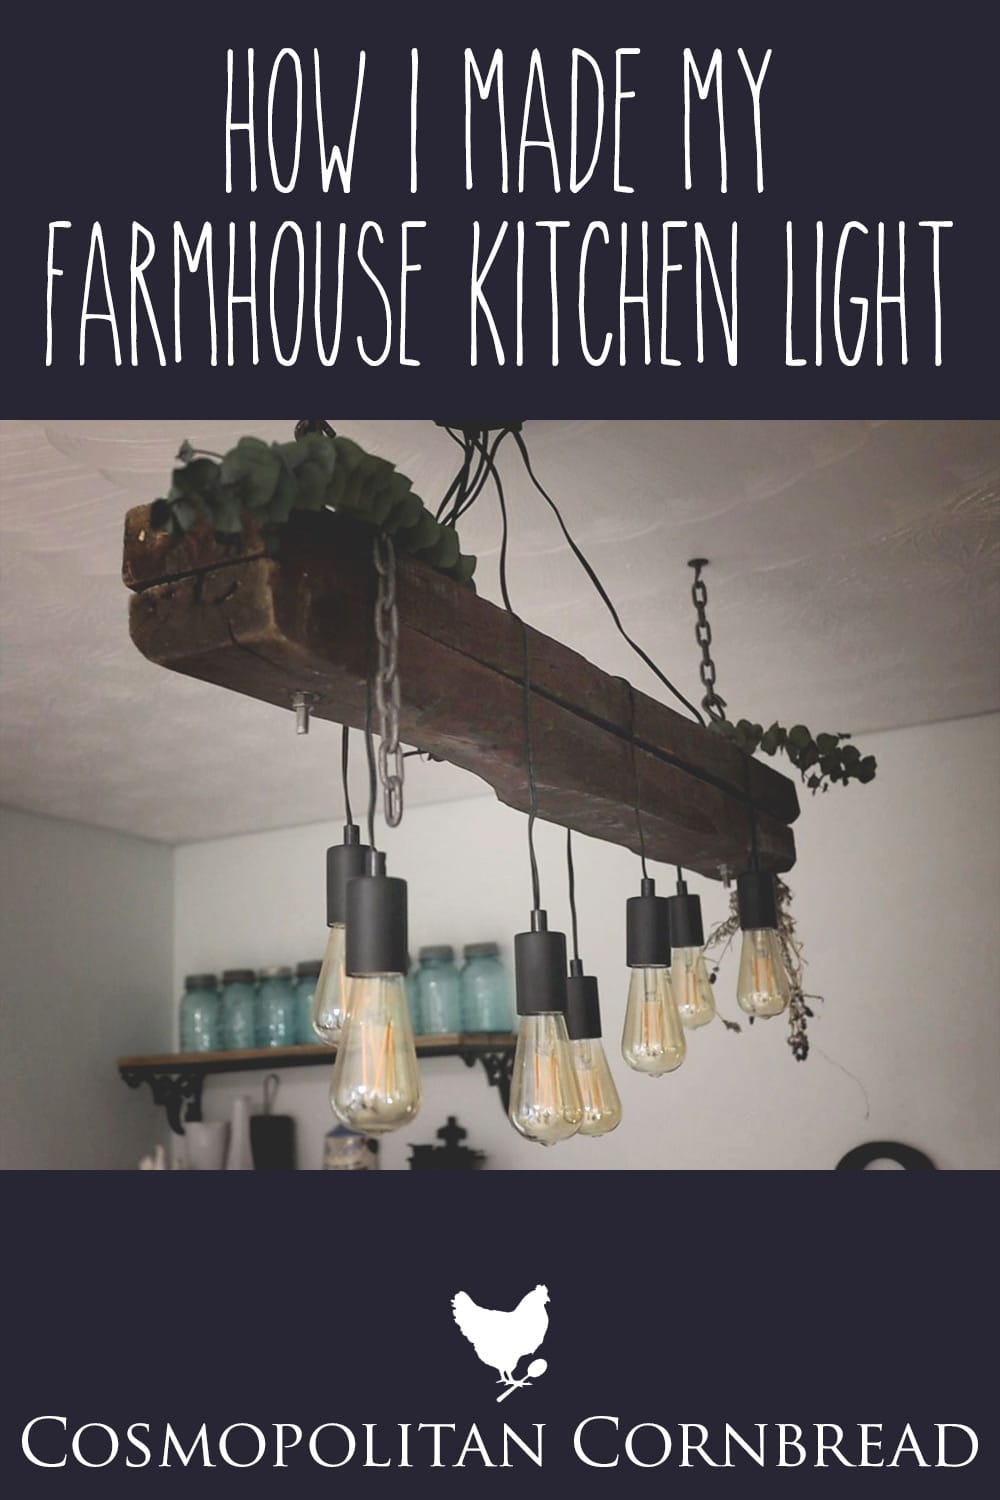 How I Made My Farmhouse Kitchen Light | Cosmopolitan Cornbread